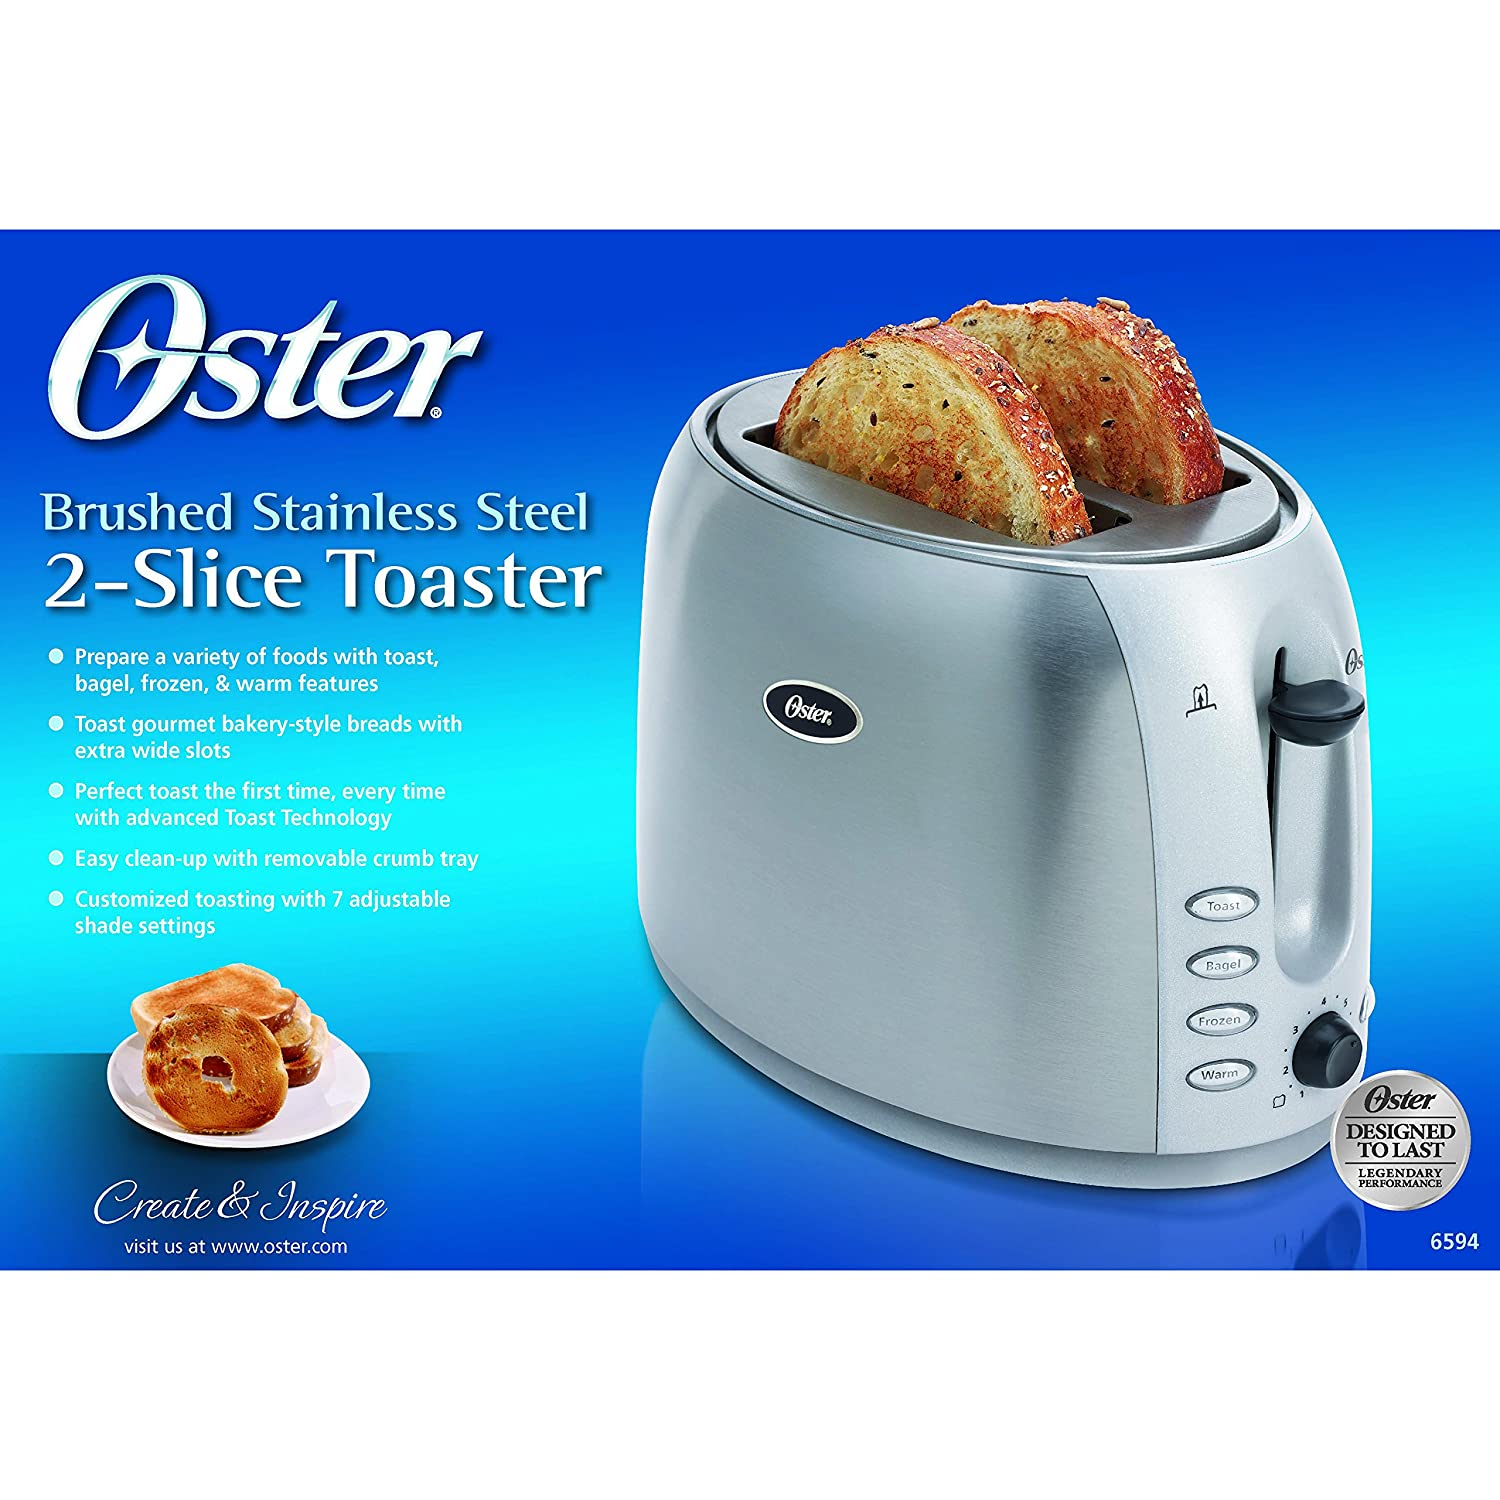 Amazon.com: Oster 2-Slice Toaster, Brushed Stainless Steel (006594 ...